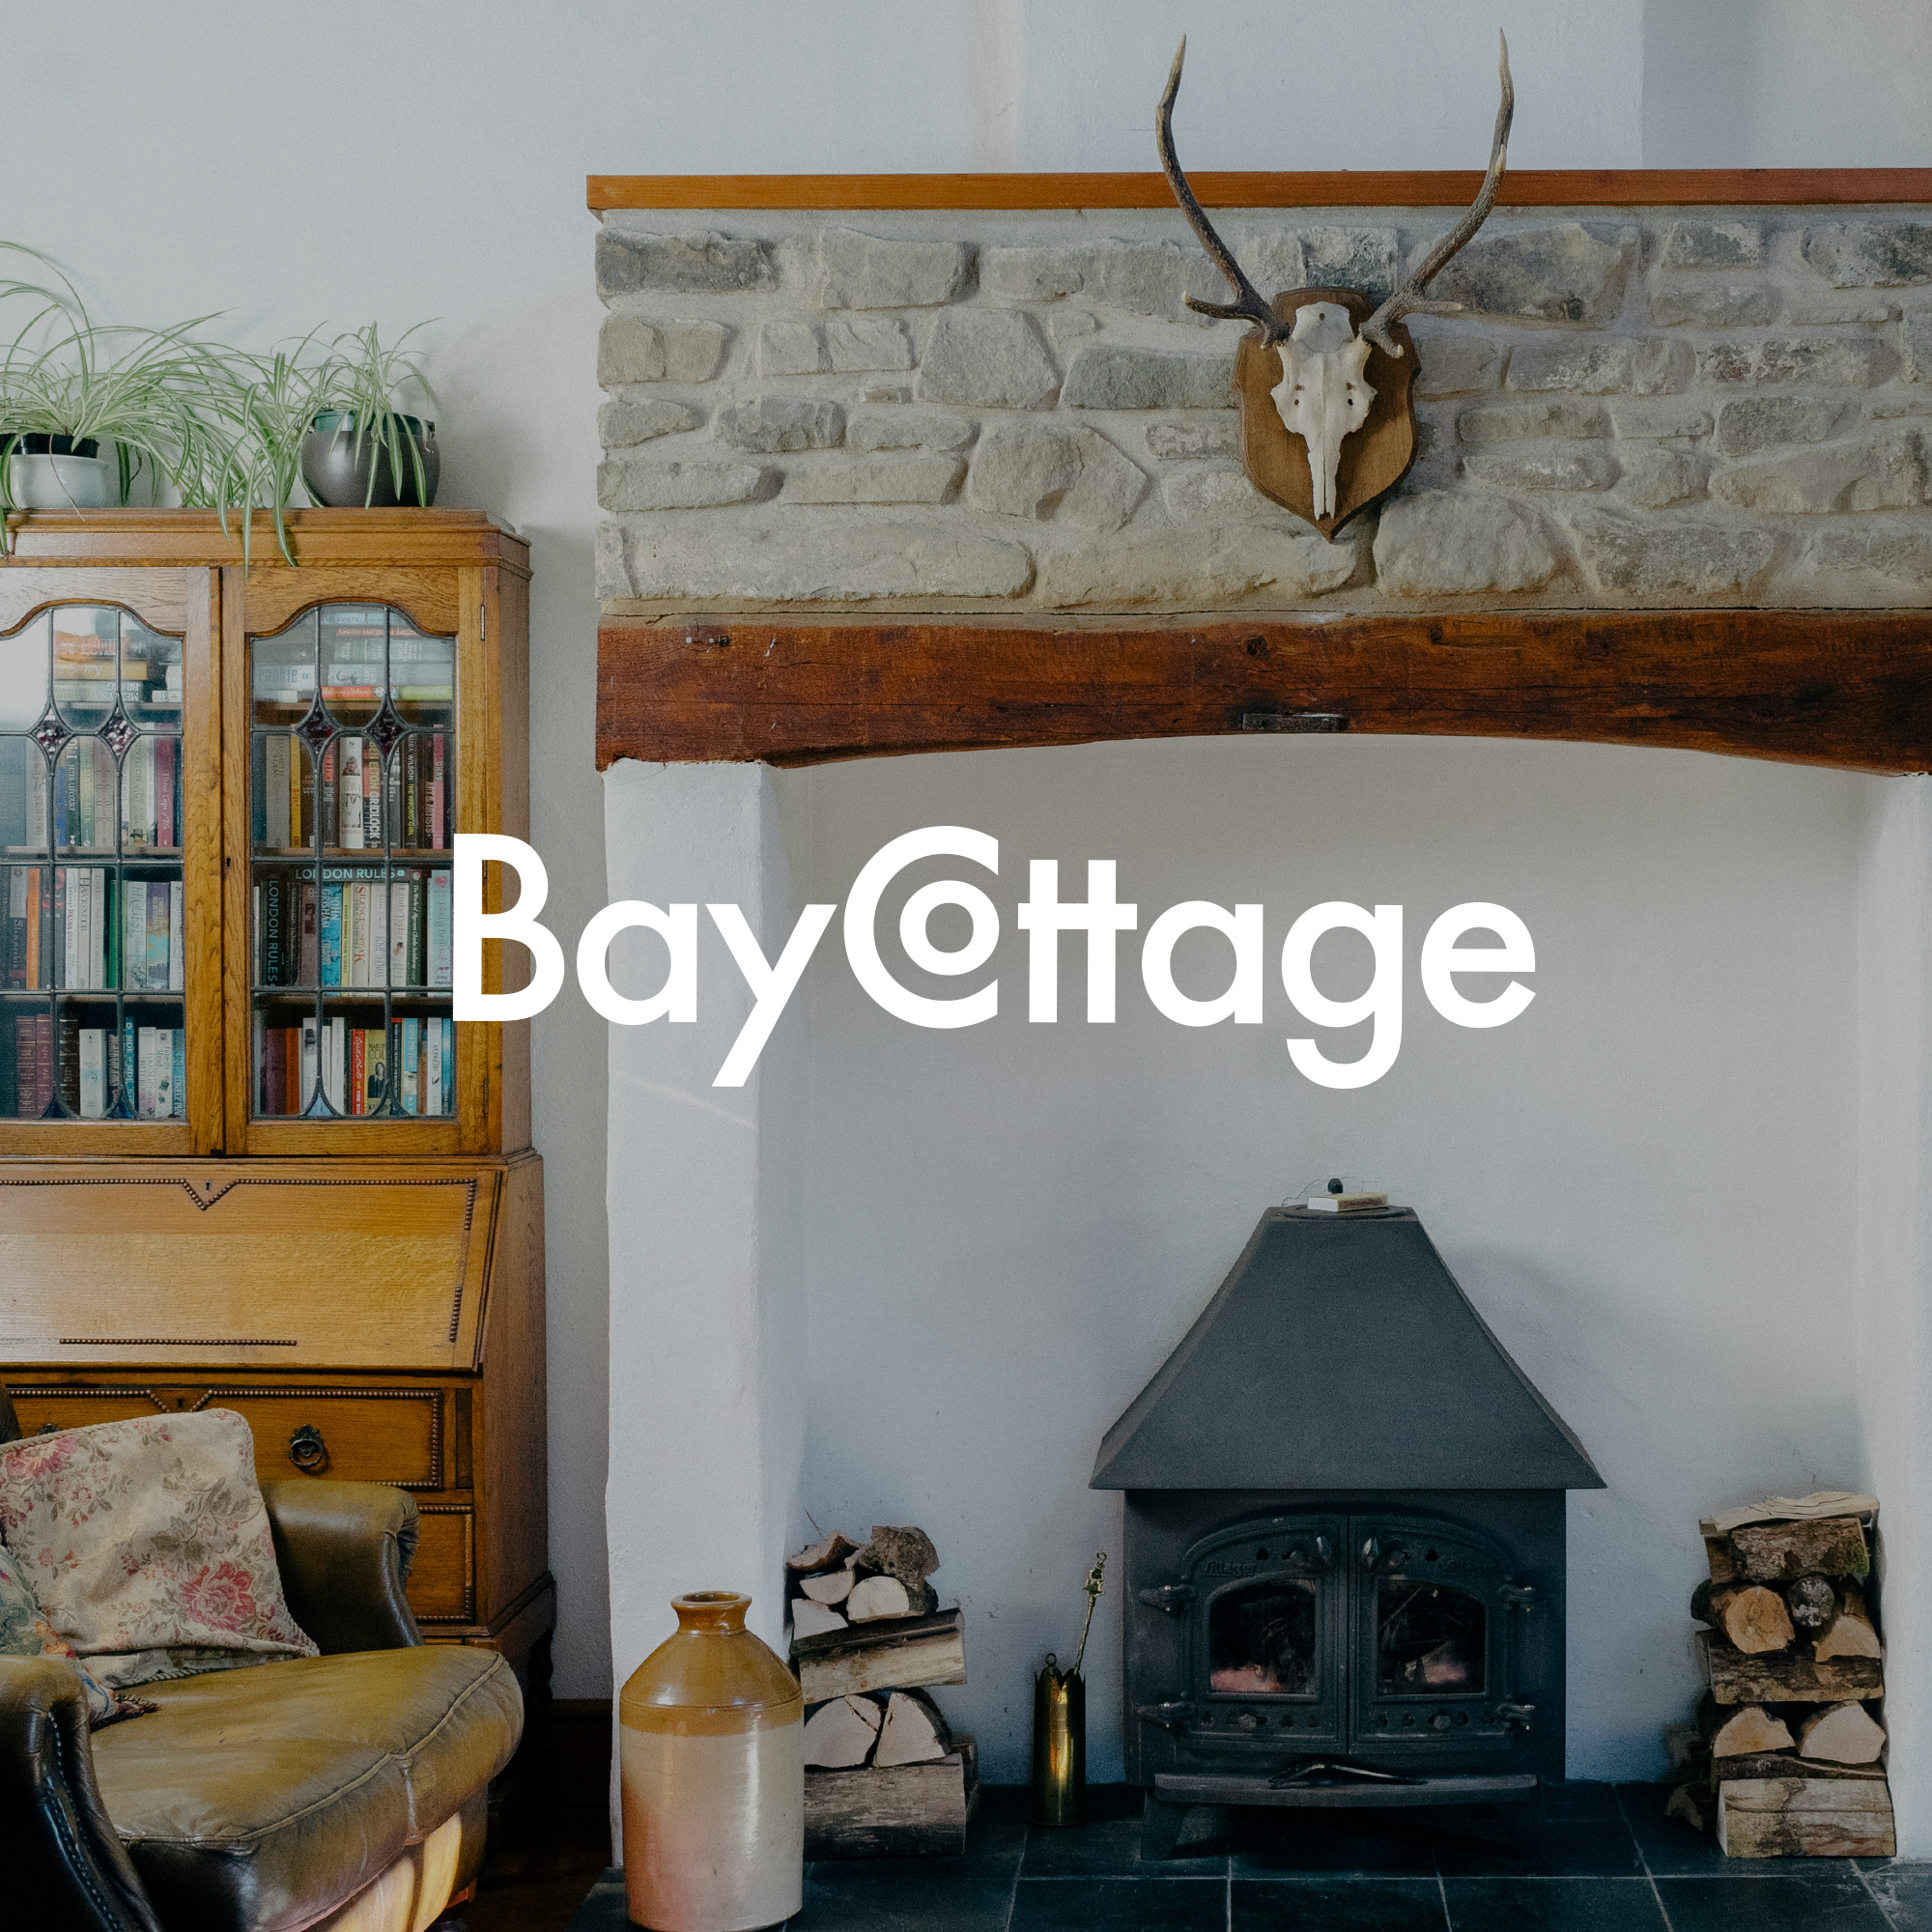 Bay Cottage at Morfa Cove